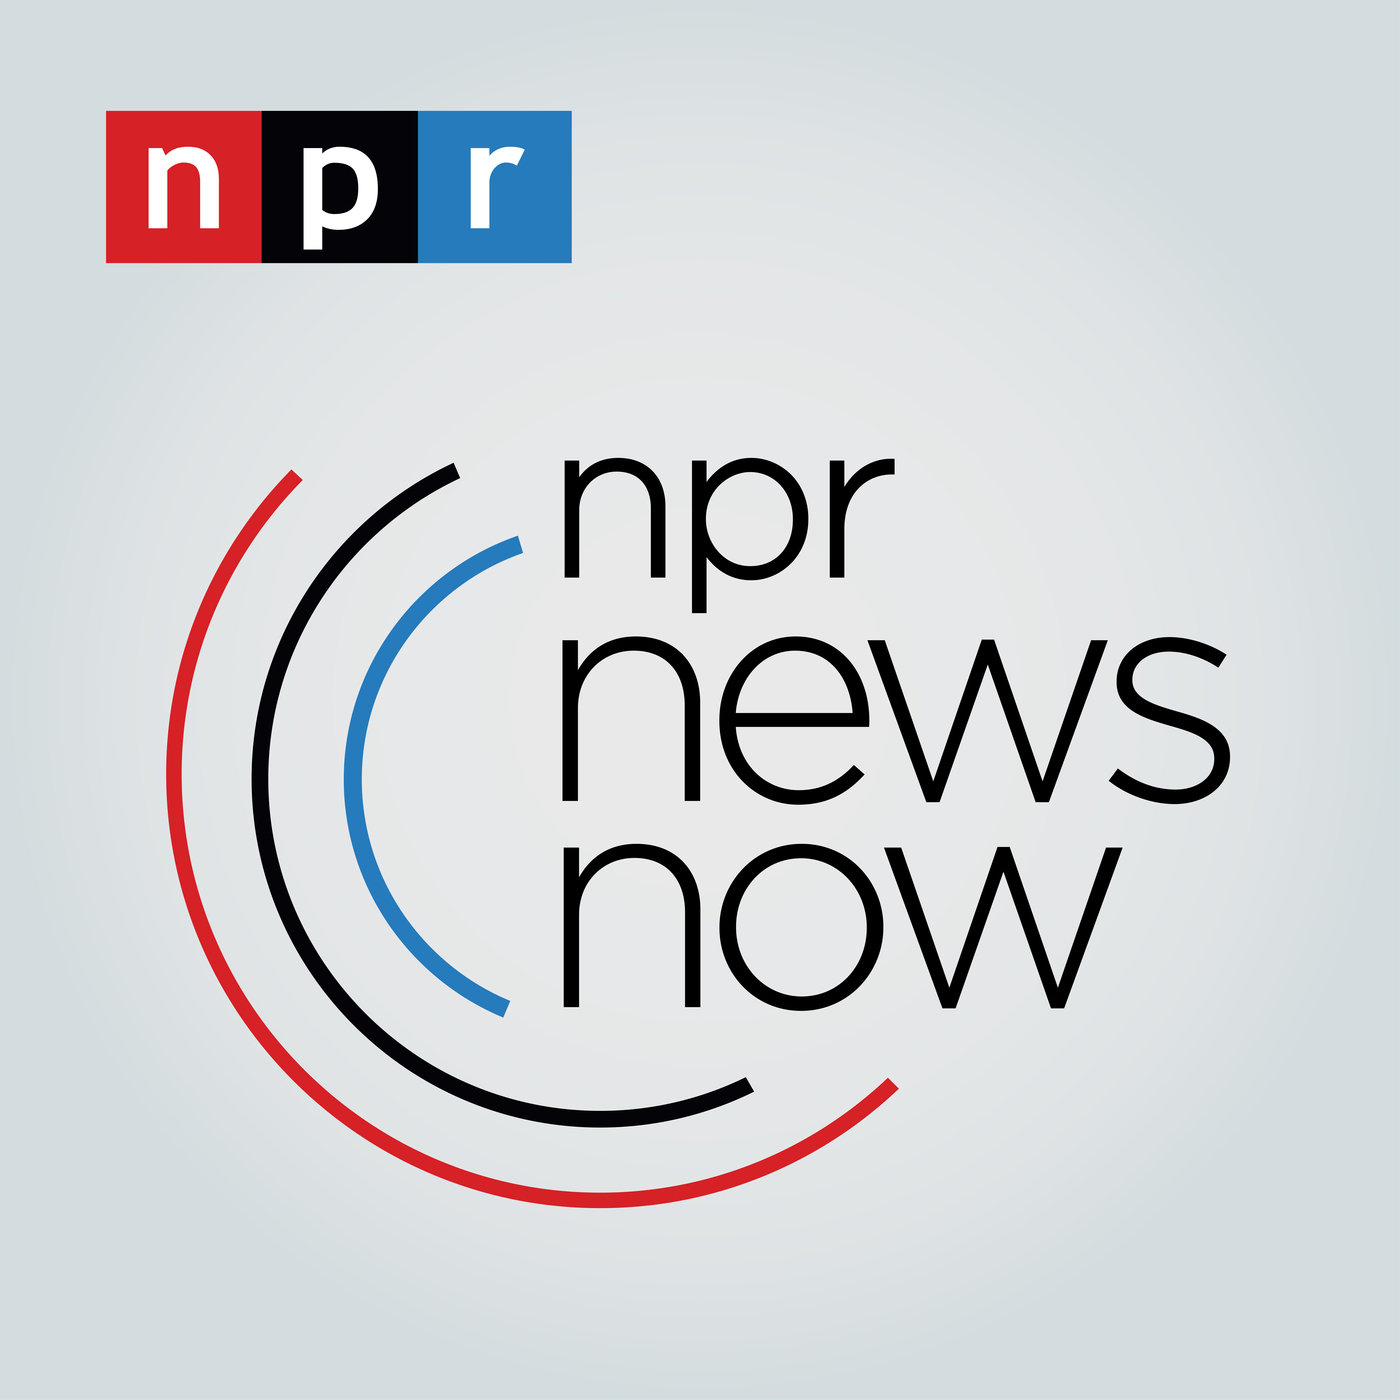 Congress, Olga Takhar and Rose Friedman discussed on NPR News Now